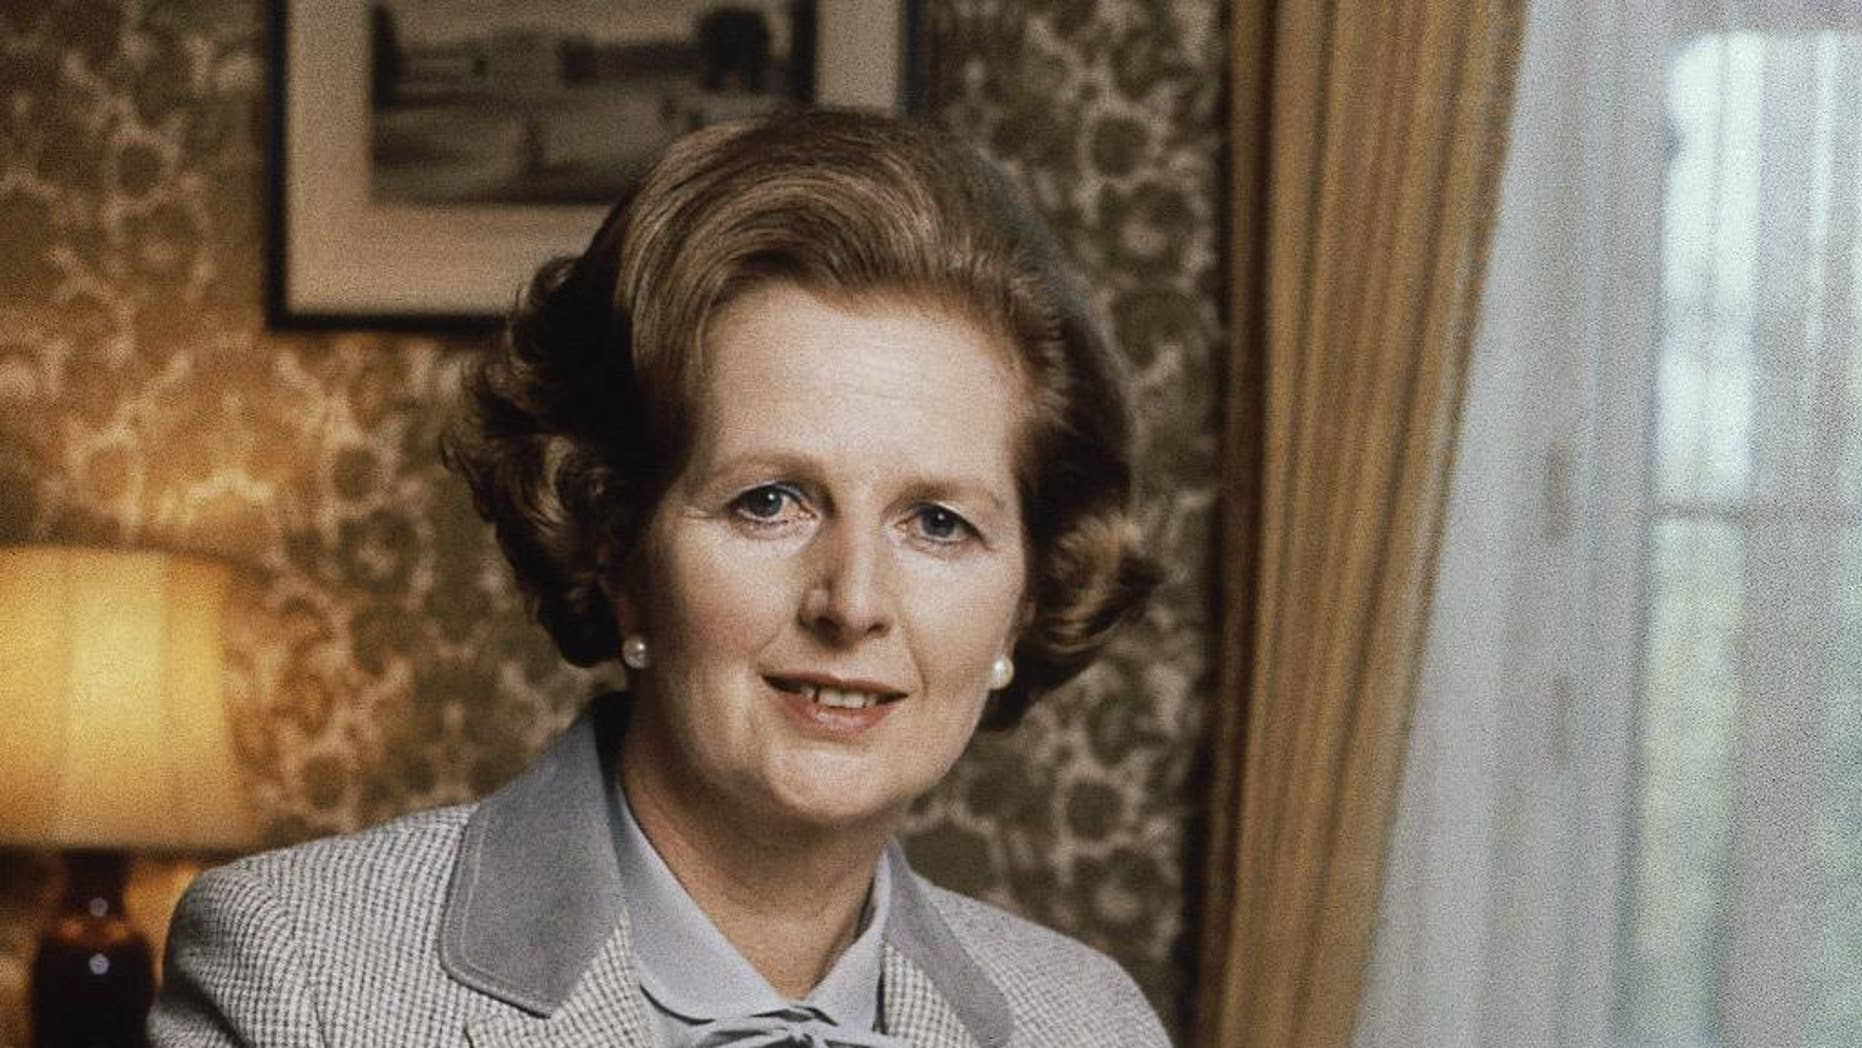 FILE - In this 1980 file photo, British Prime Minister Margaret Thatcher poses for a photograph in London. Newly released official papers show that former Prime Minister Margaret Thatcher's government considered rebuilding Britain's chemical weapons arsenal in the face of a Soviet threat in the early 1980s. (AP Photo/Gerald Penny, File)